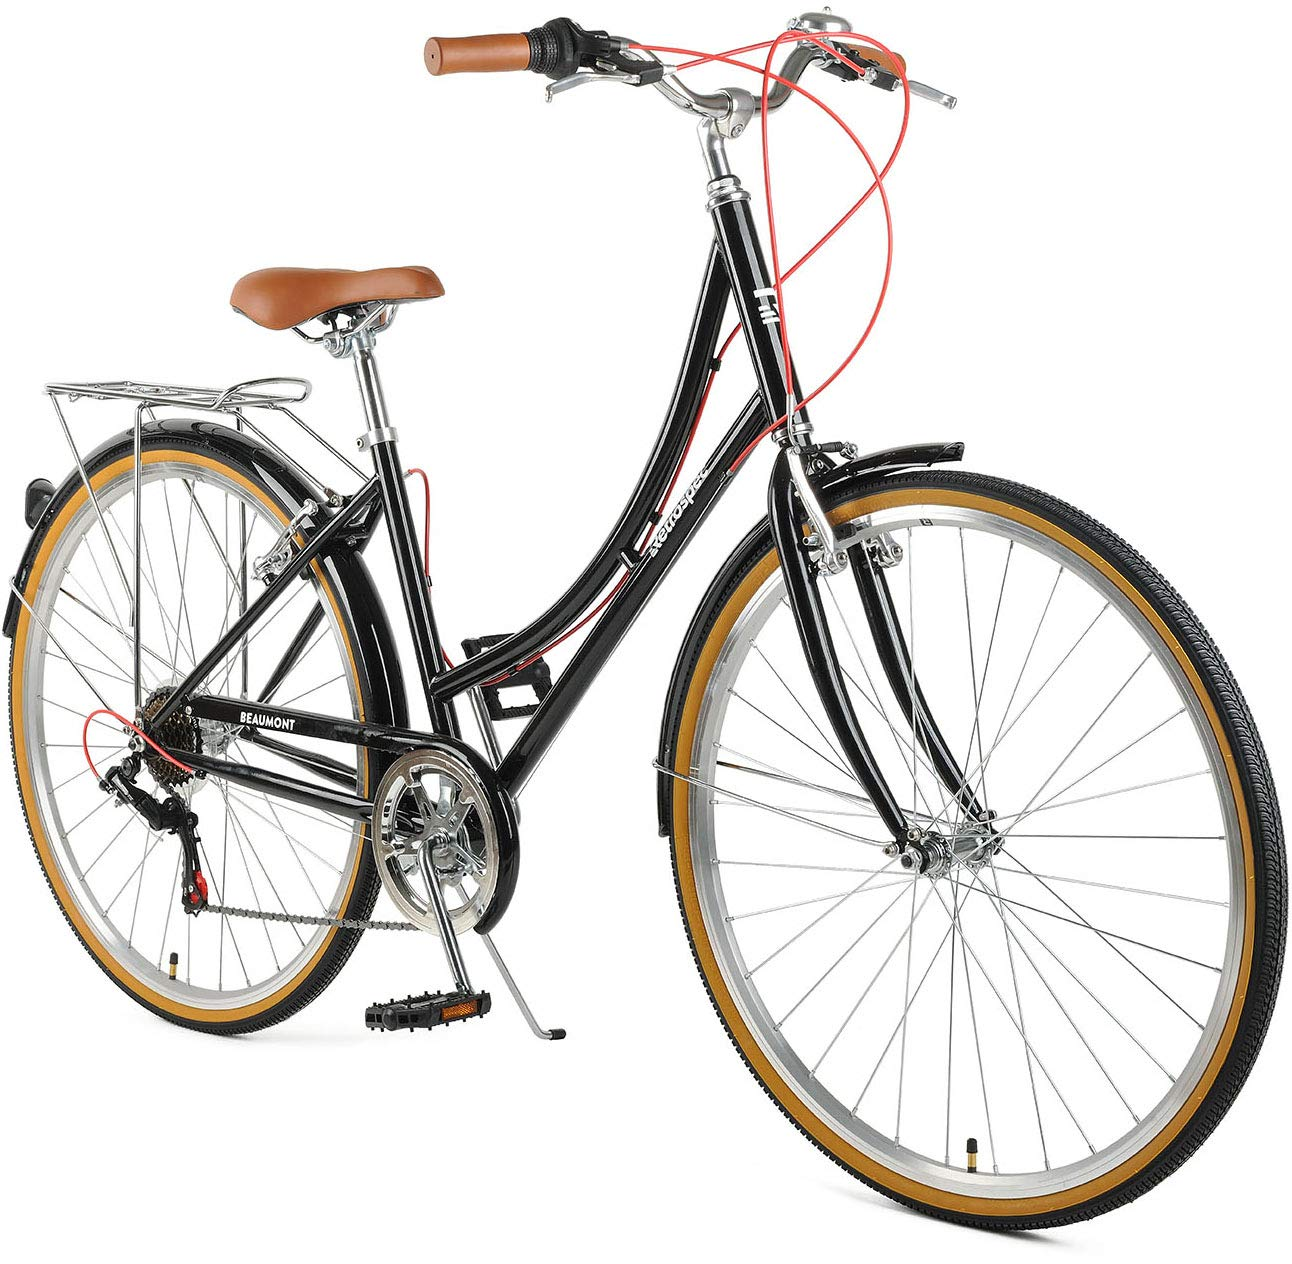 Retrospec Beaumont Lady's Urban City Commuter Bike, 7-Speed